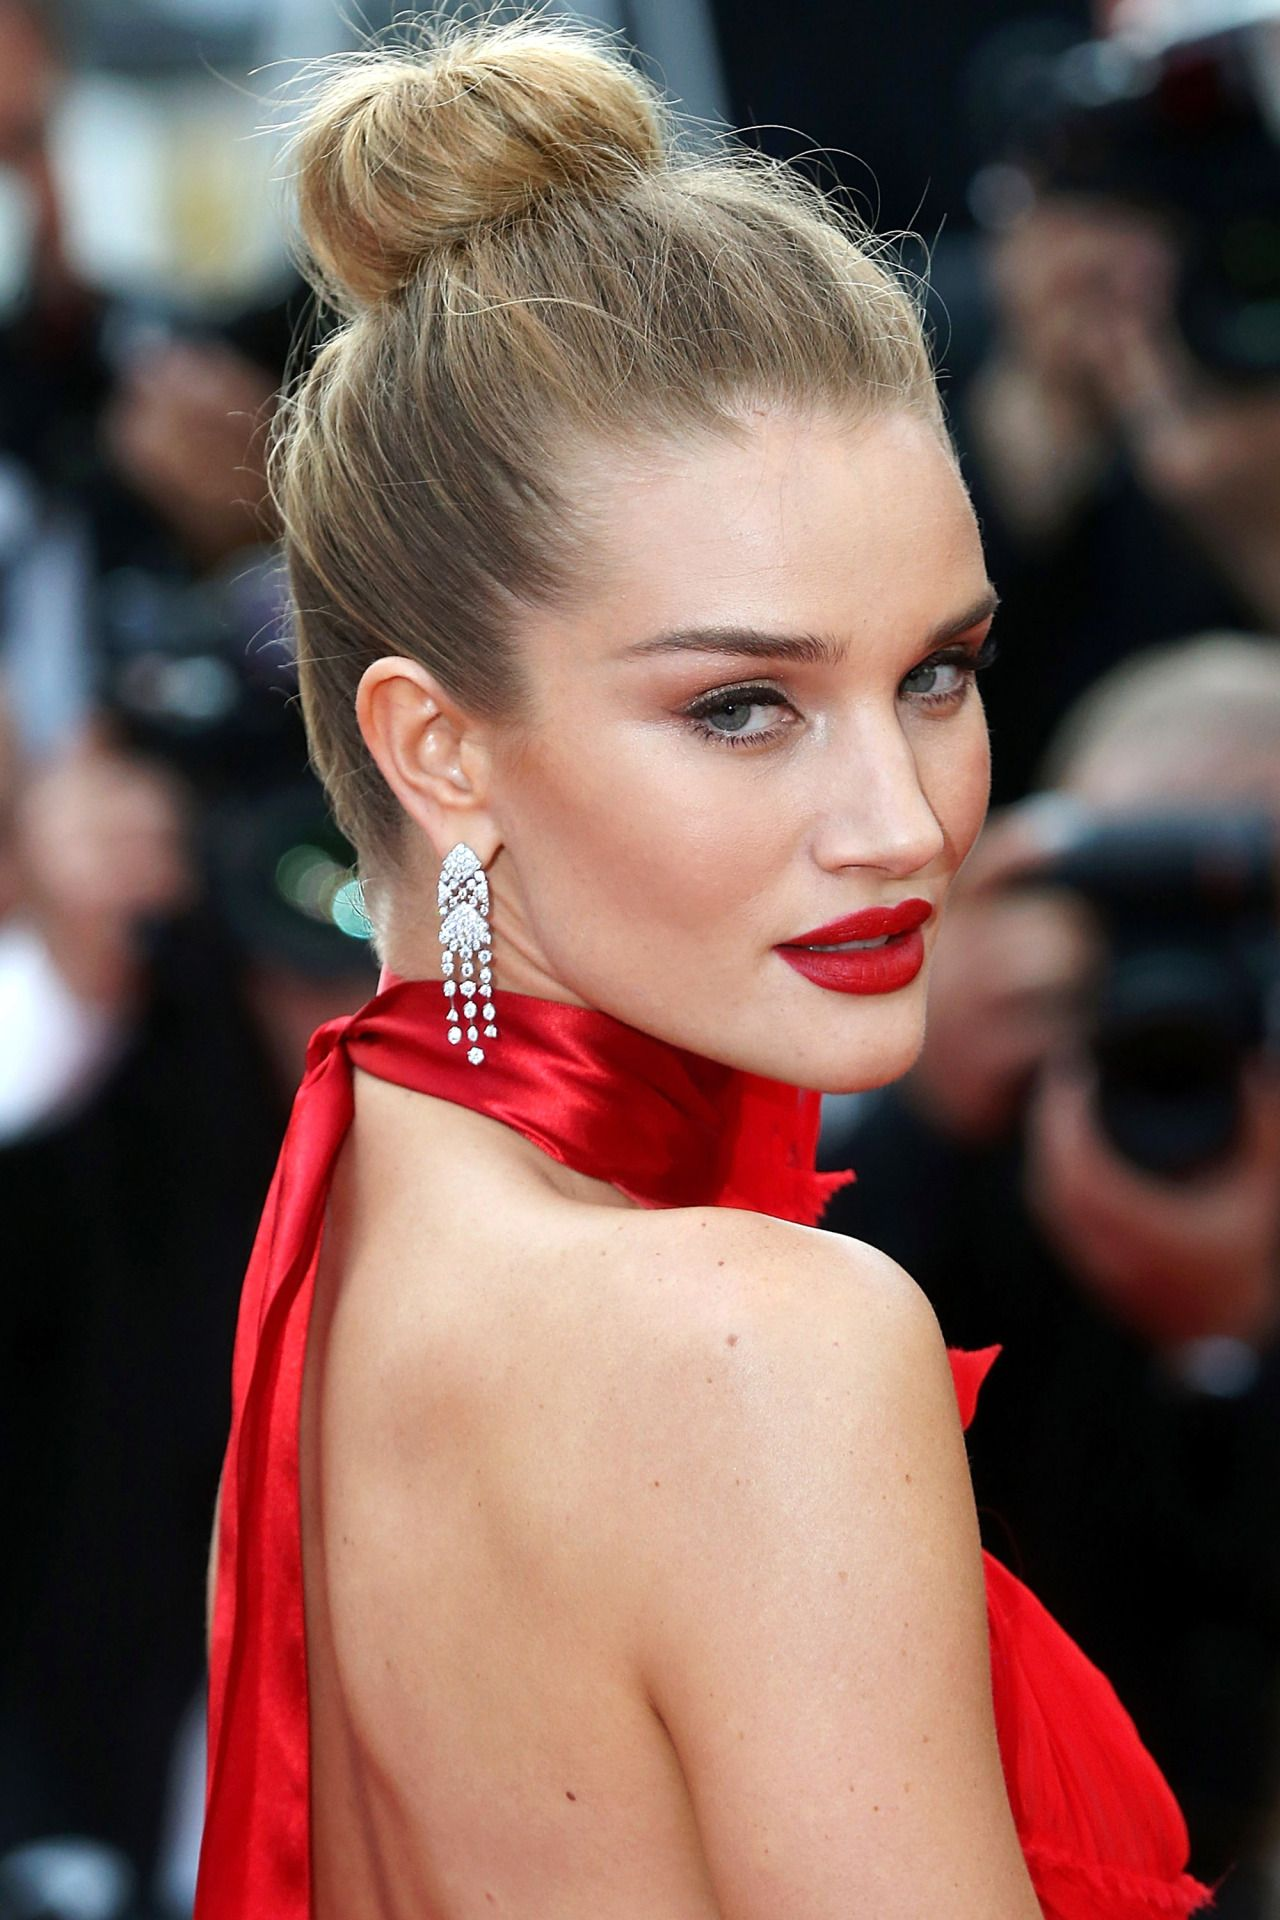 Rosie Huntington Whiteley Hot Red Lips - Rosie Huntington Whiteley Hot Red Lips